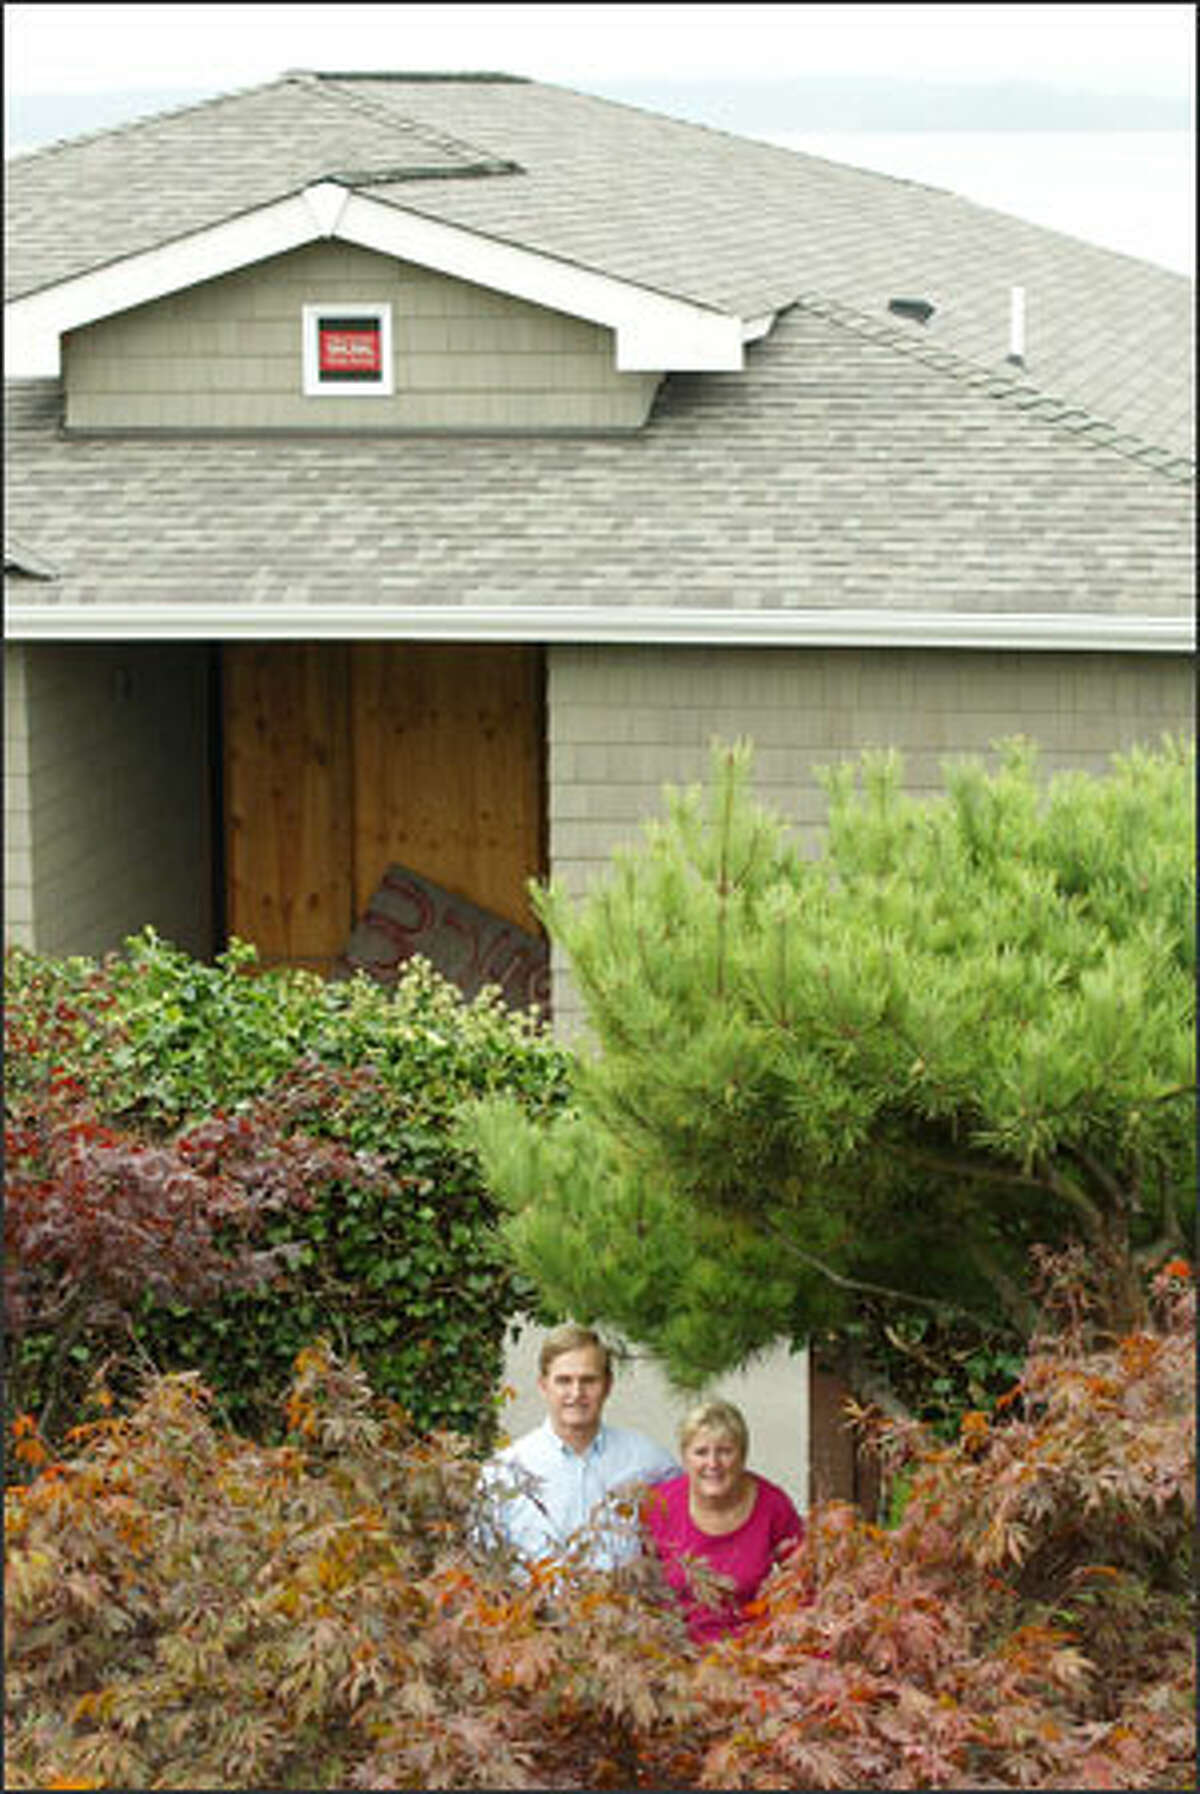 Dave and Carole Bauman, shown in their back yard in West Seattle Friday, won a legal battle when a judge told neighbors who own the house in the background to put a flat roof on it.